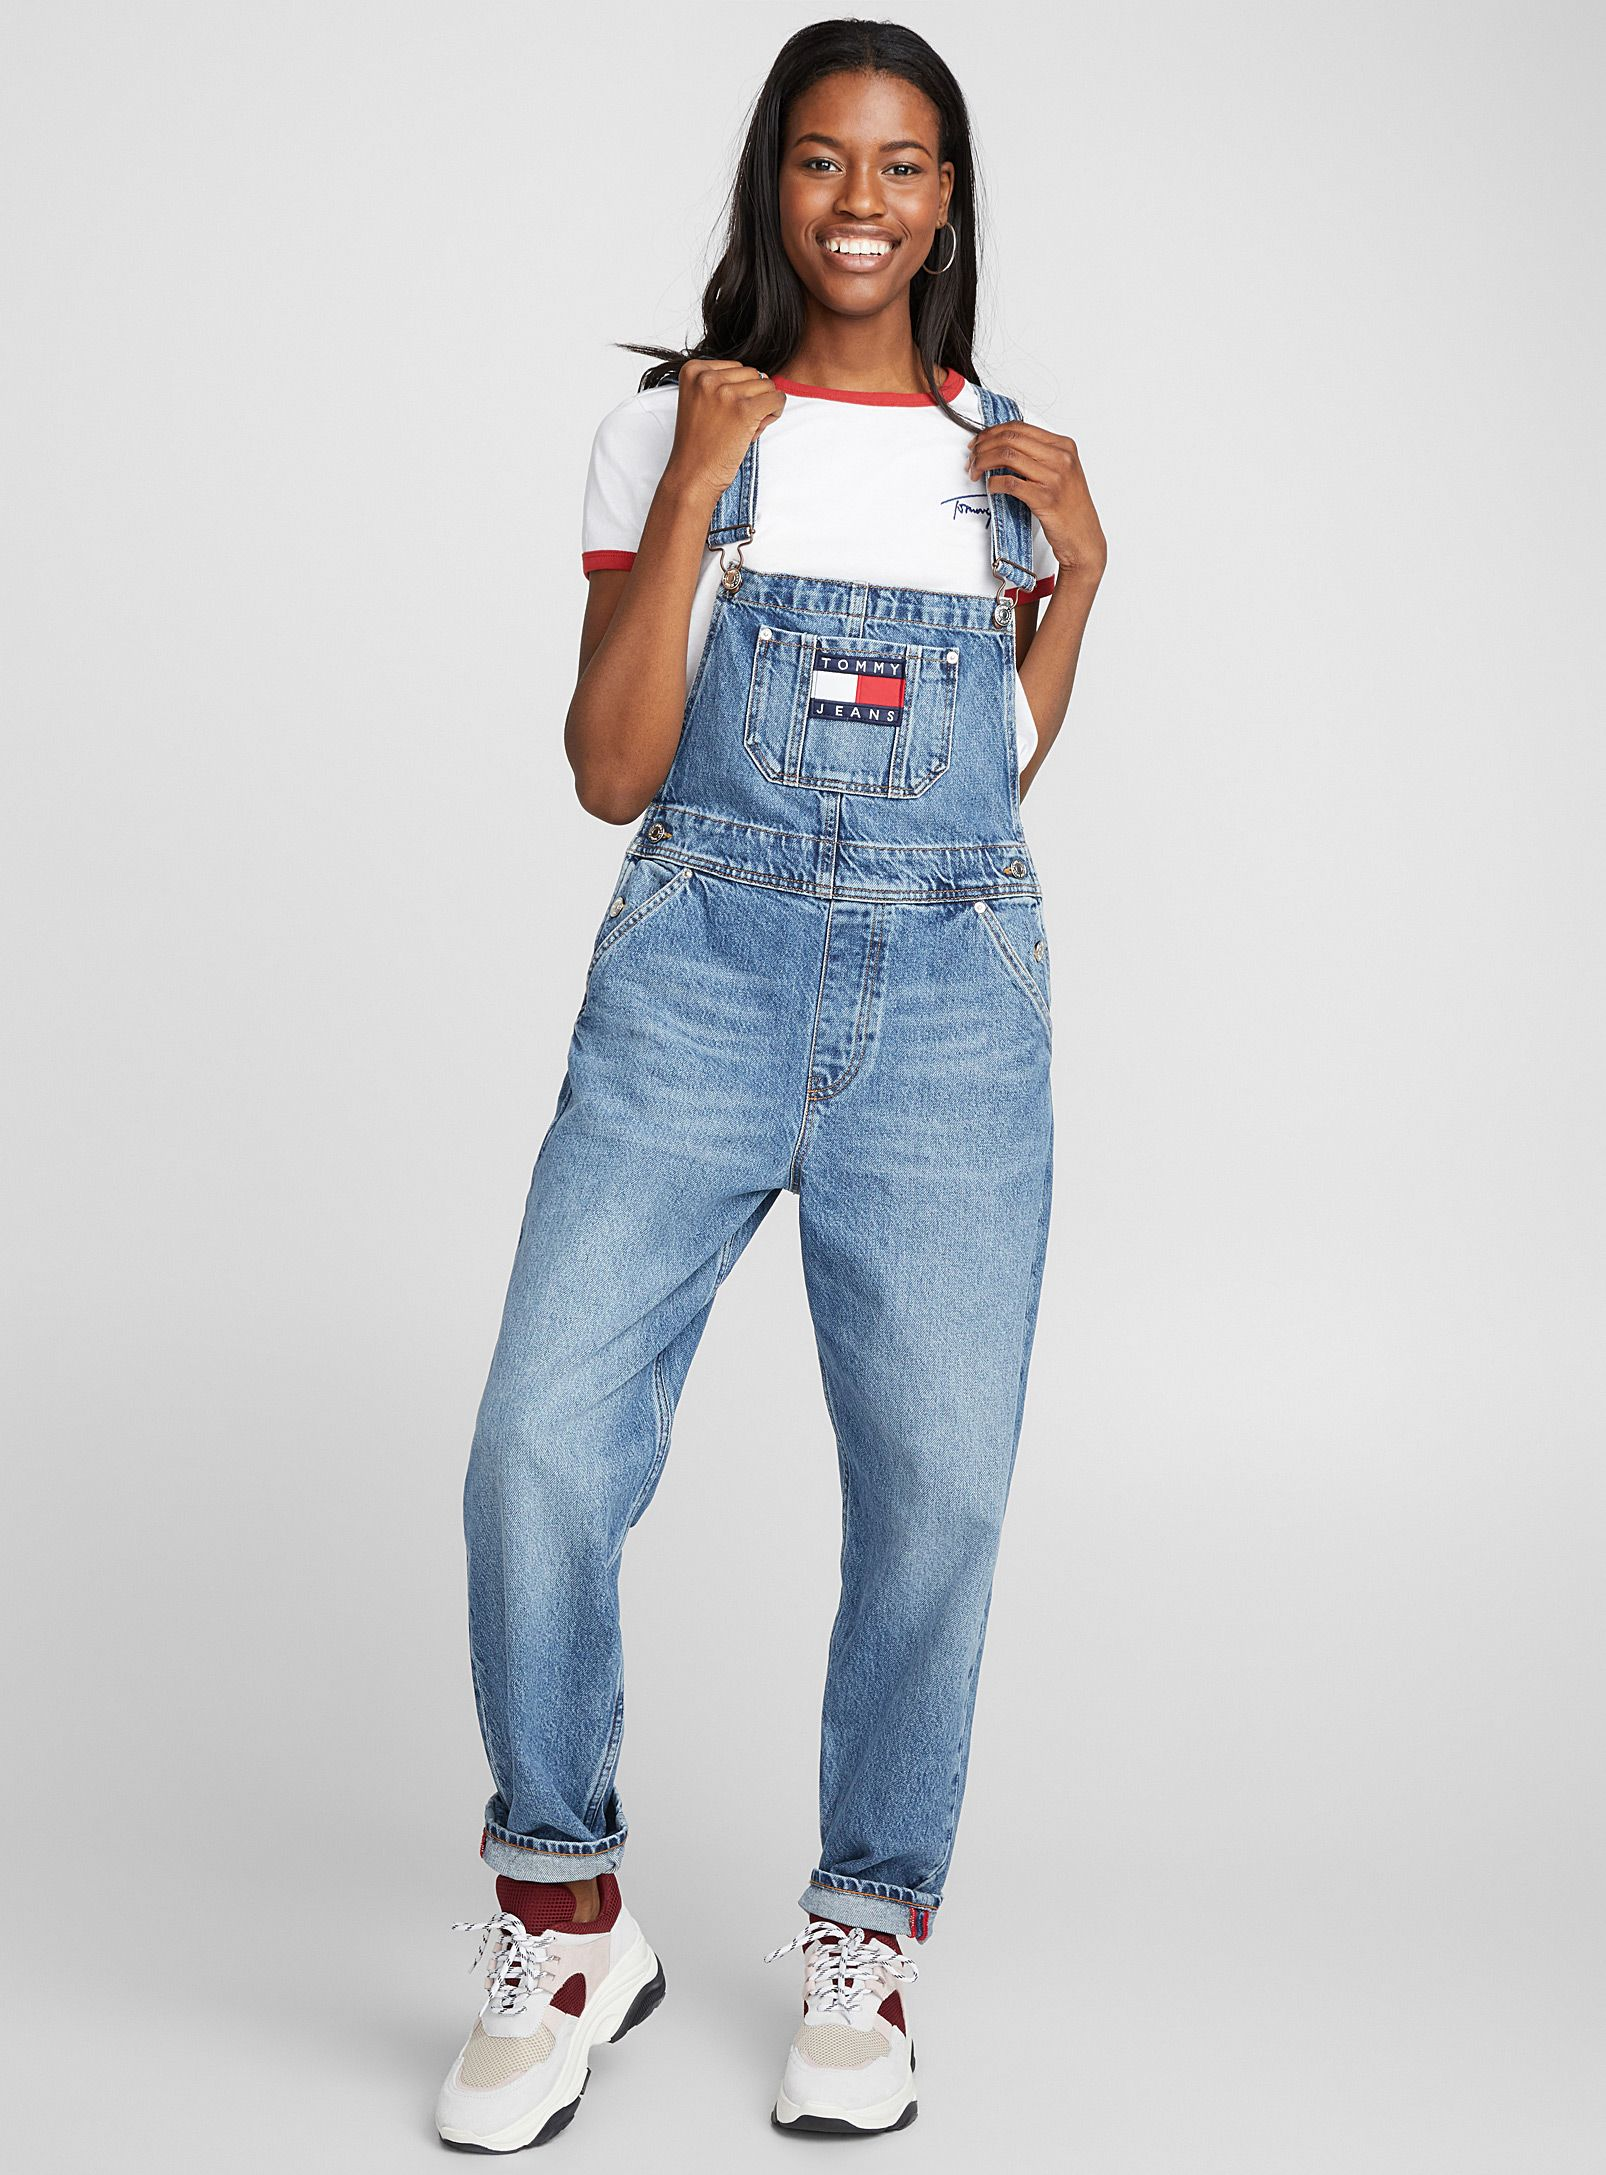 100% authentic huge sale running shoes La salopette Dungaree 90's in 2019 | All About Denim ...